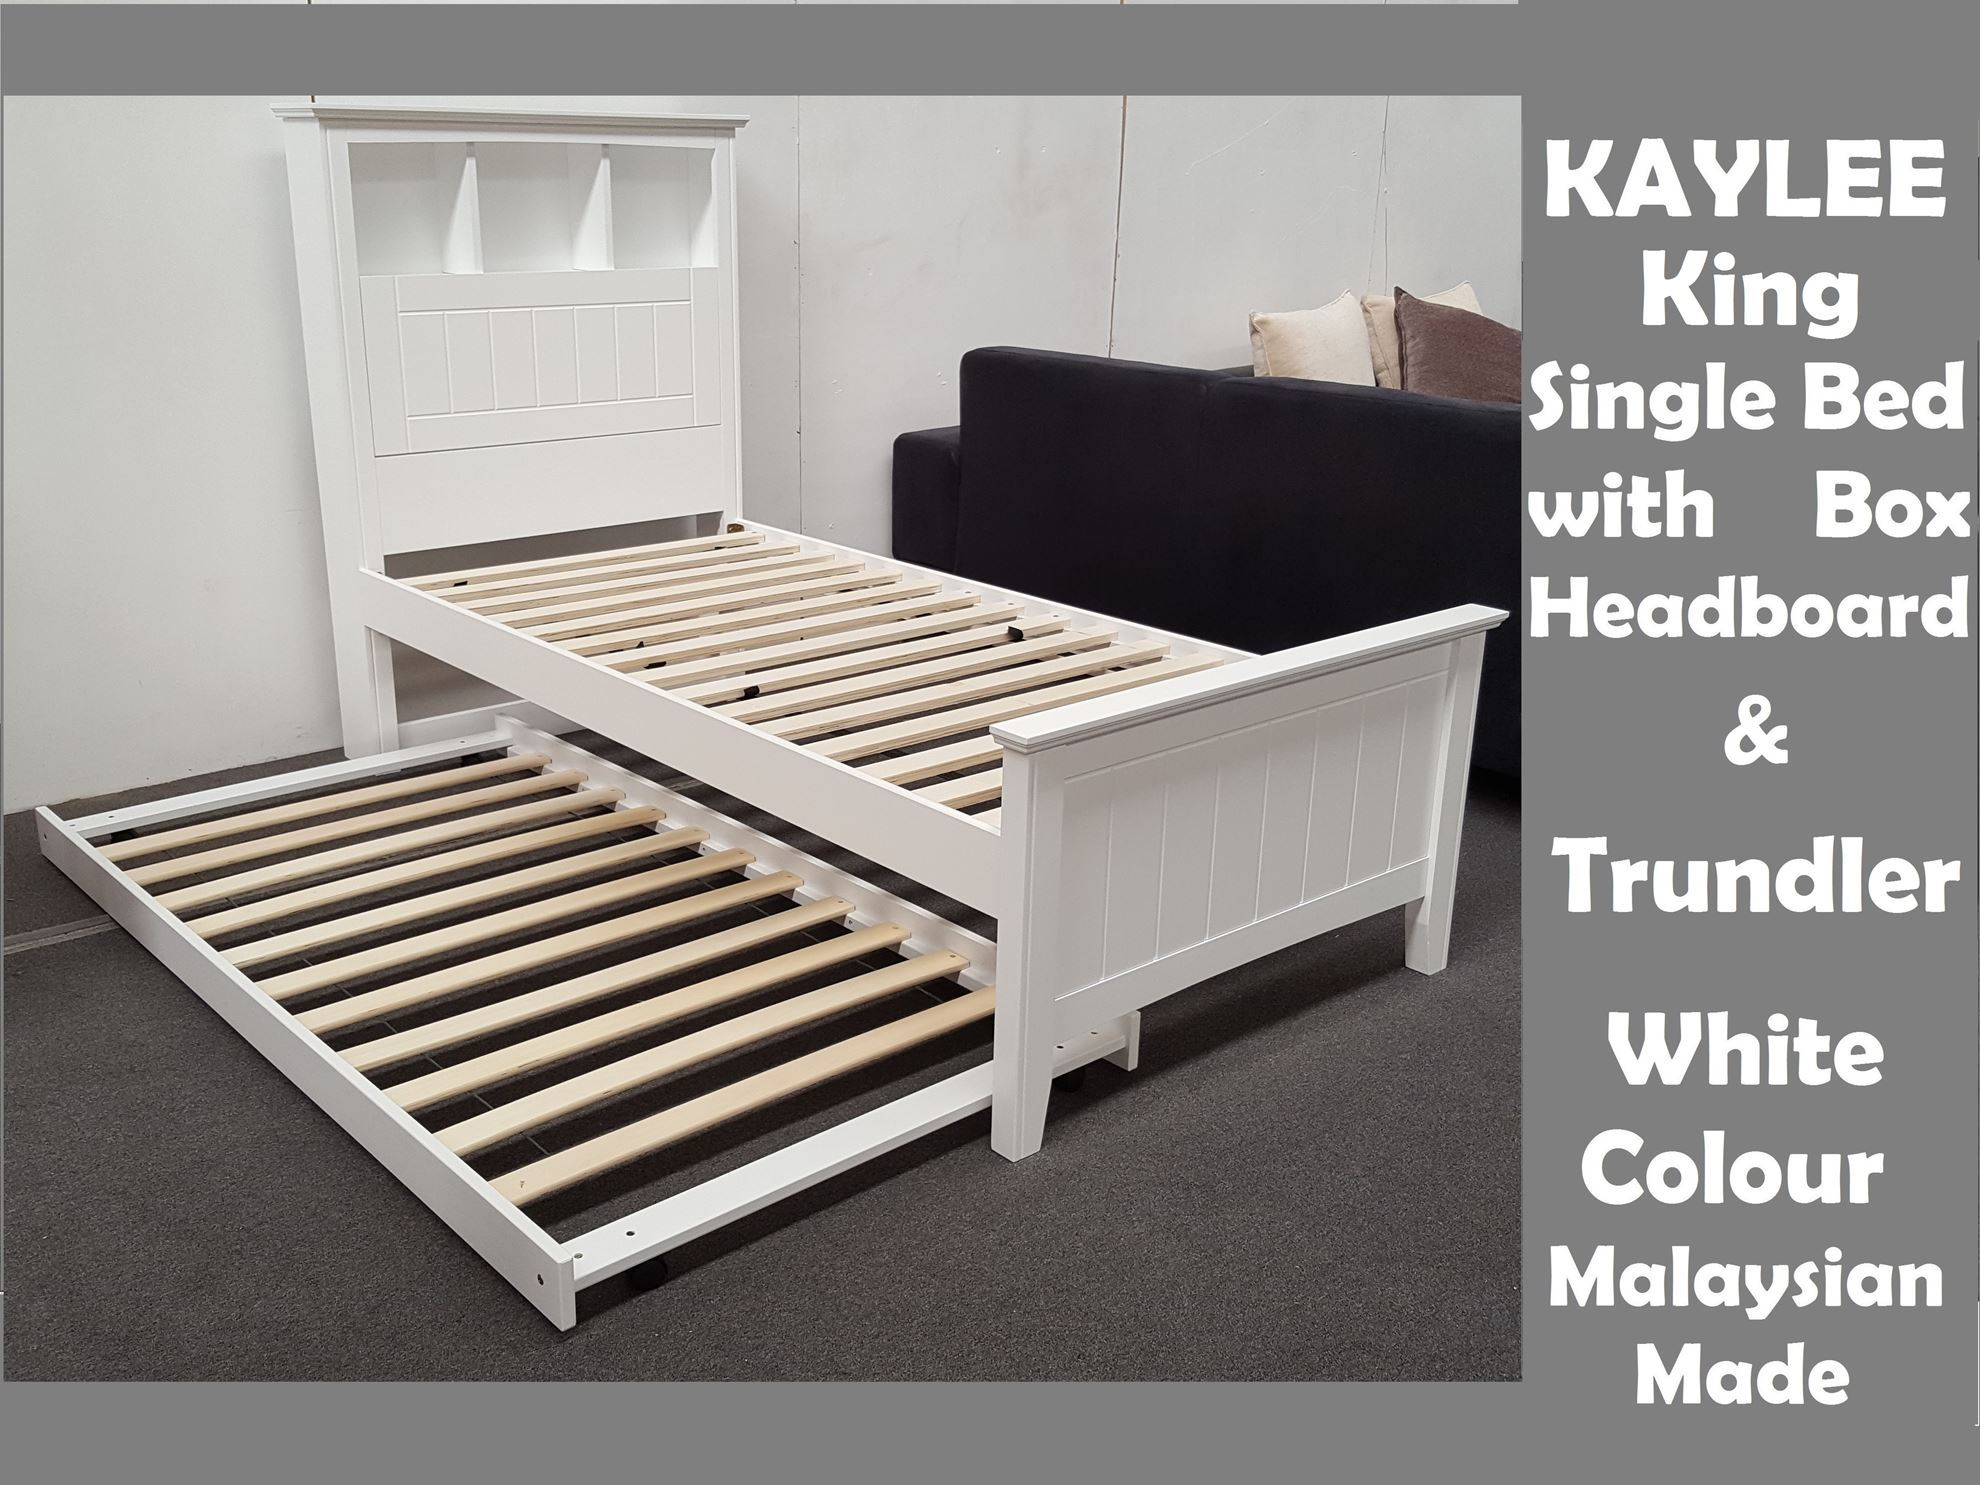 Furniture Place Kaylee King Single Bed With Box Headboard